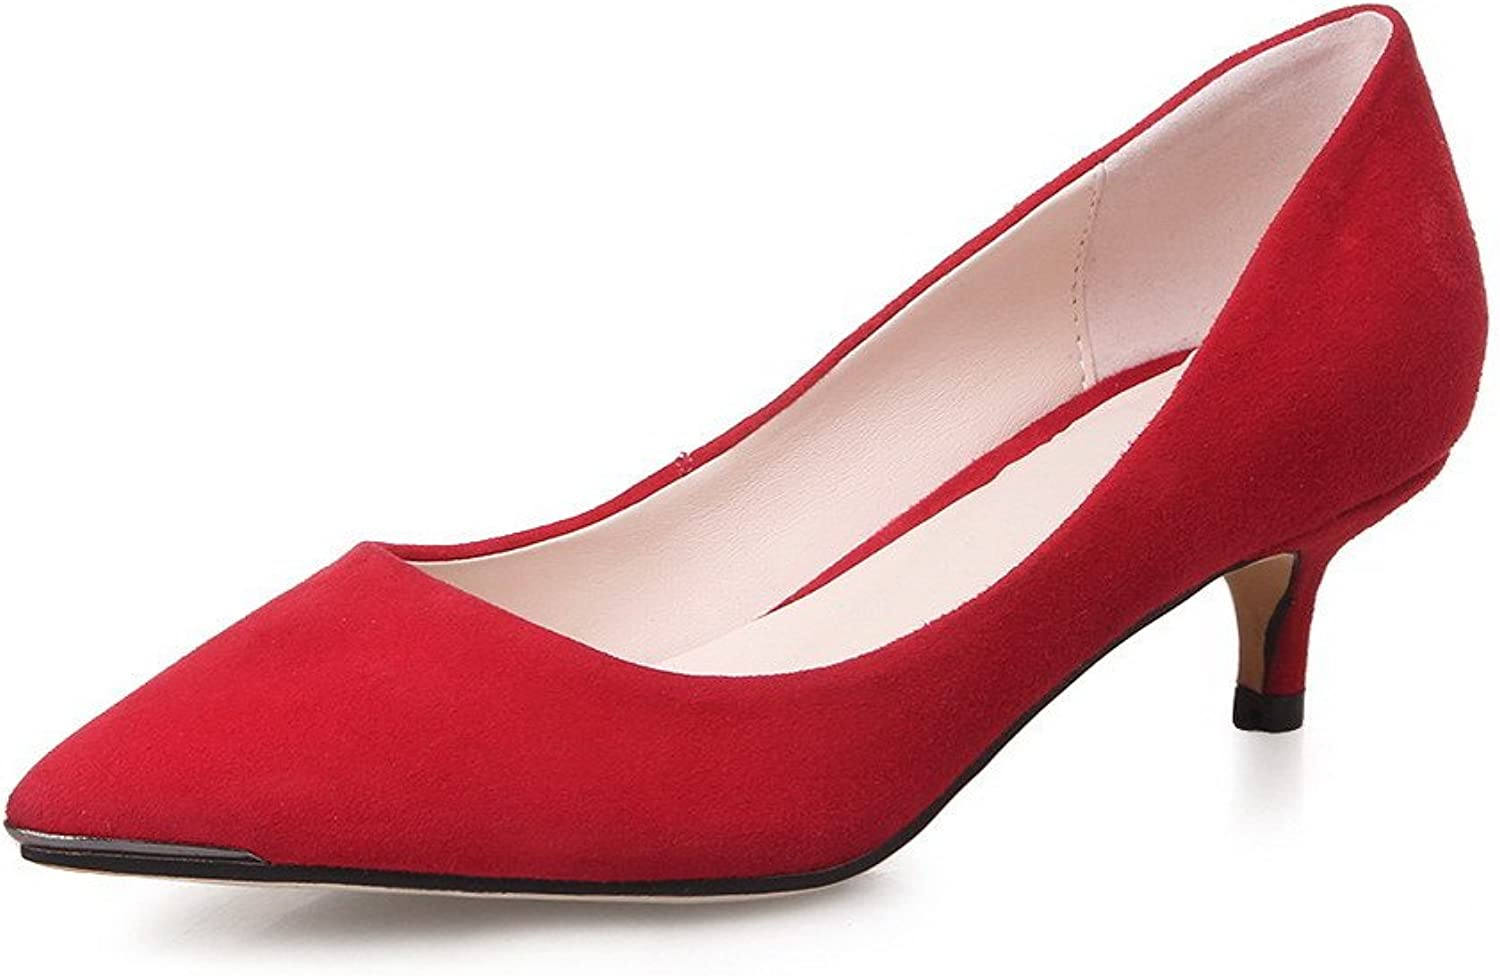 AllhqFashion Women's Pull On Sheepskin Pointed Closed Toe Kitten Heels Solid Pumps shoes